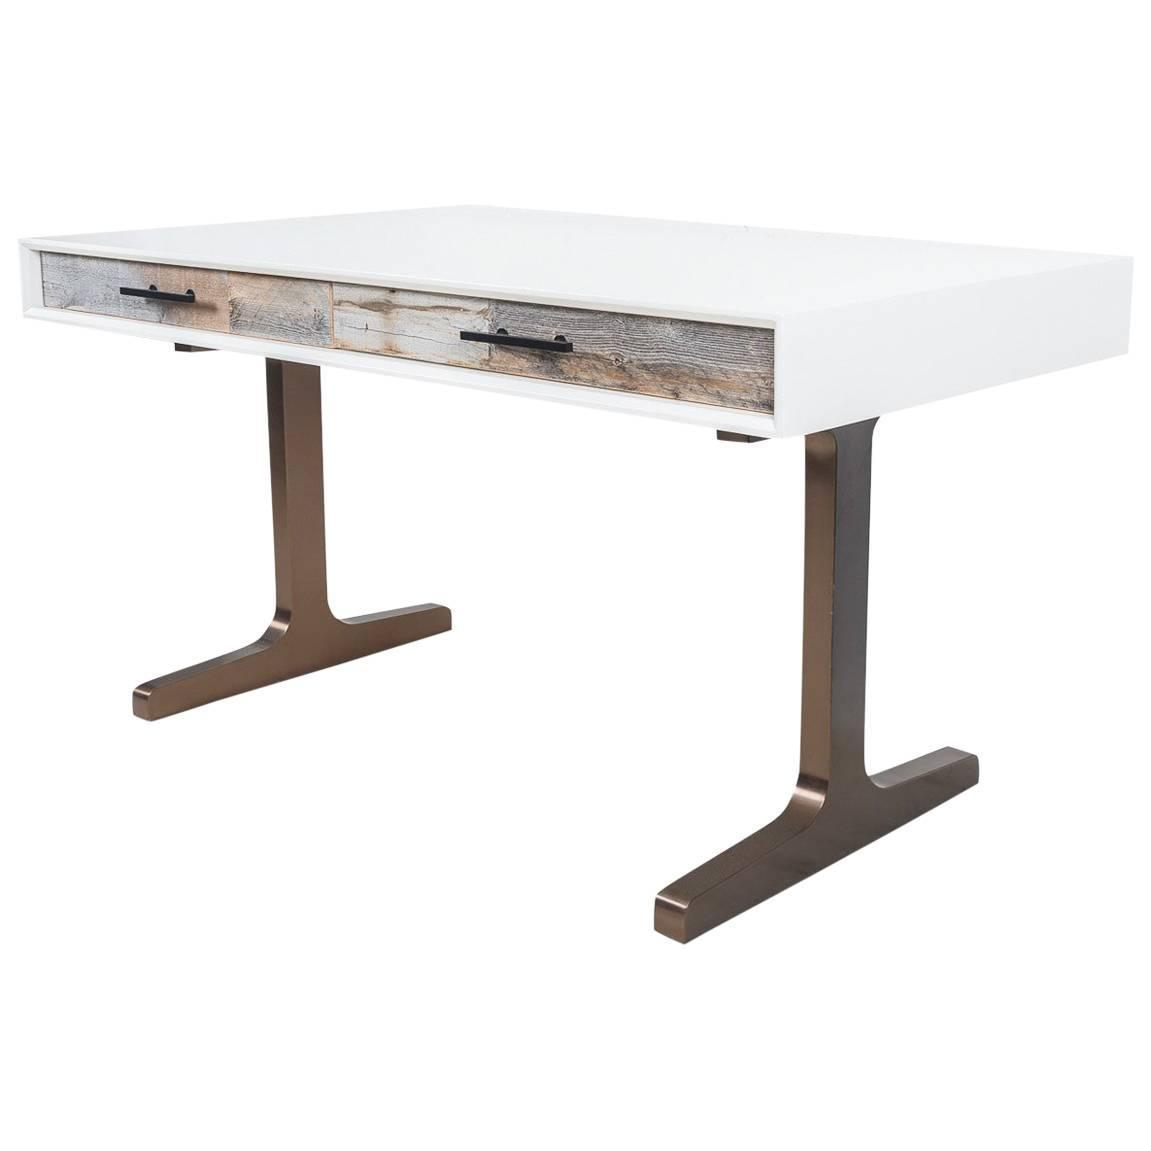 White Lacquered Desk With Recycled Wood Accentid Century Copper T Legs For At 1stdibs